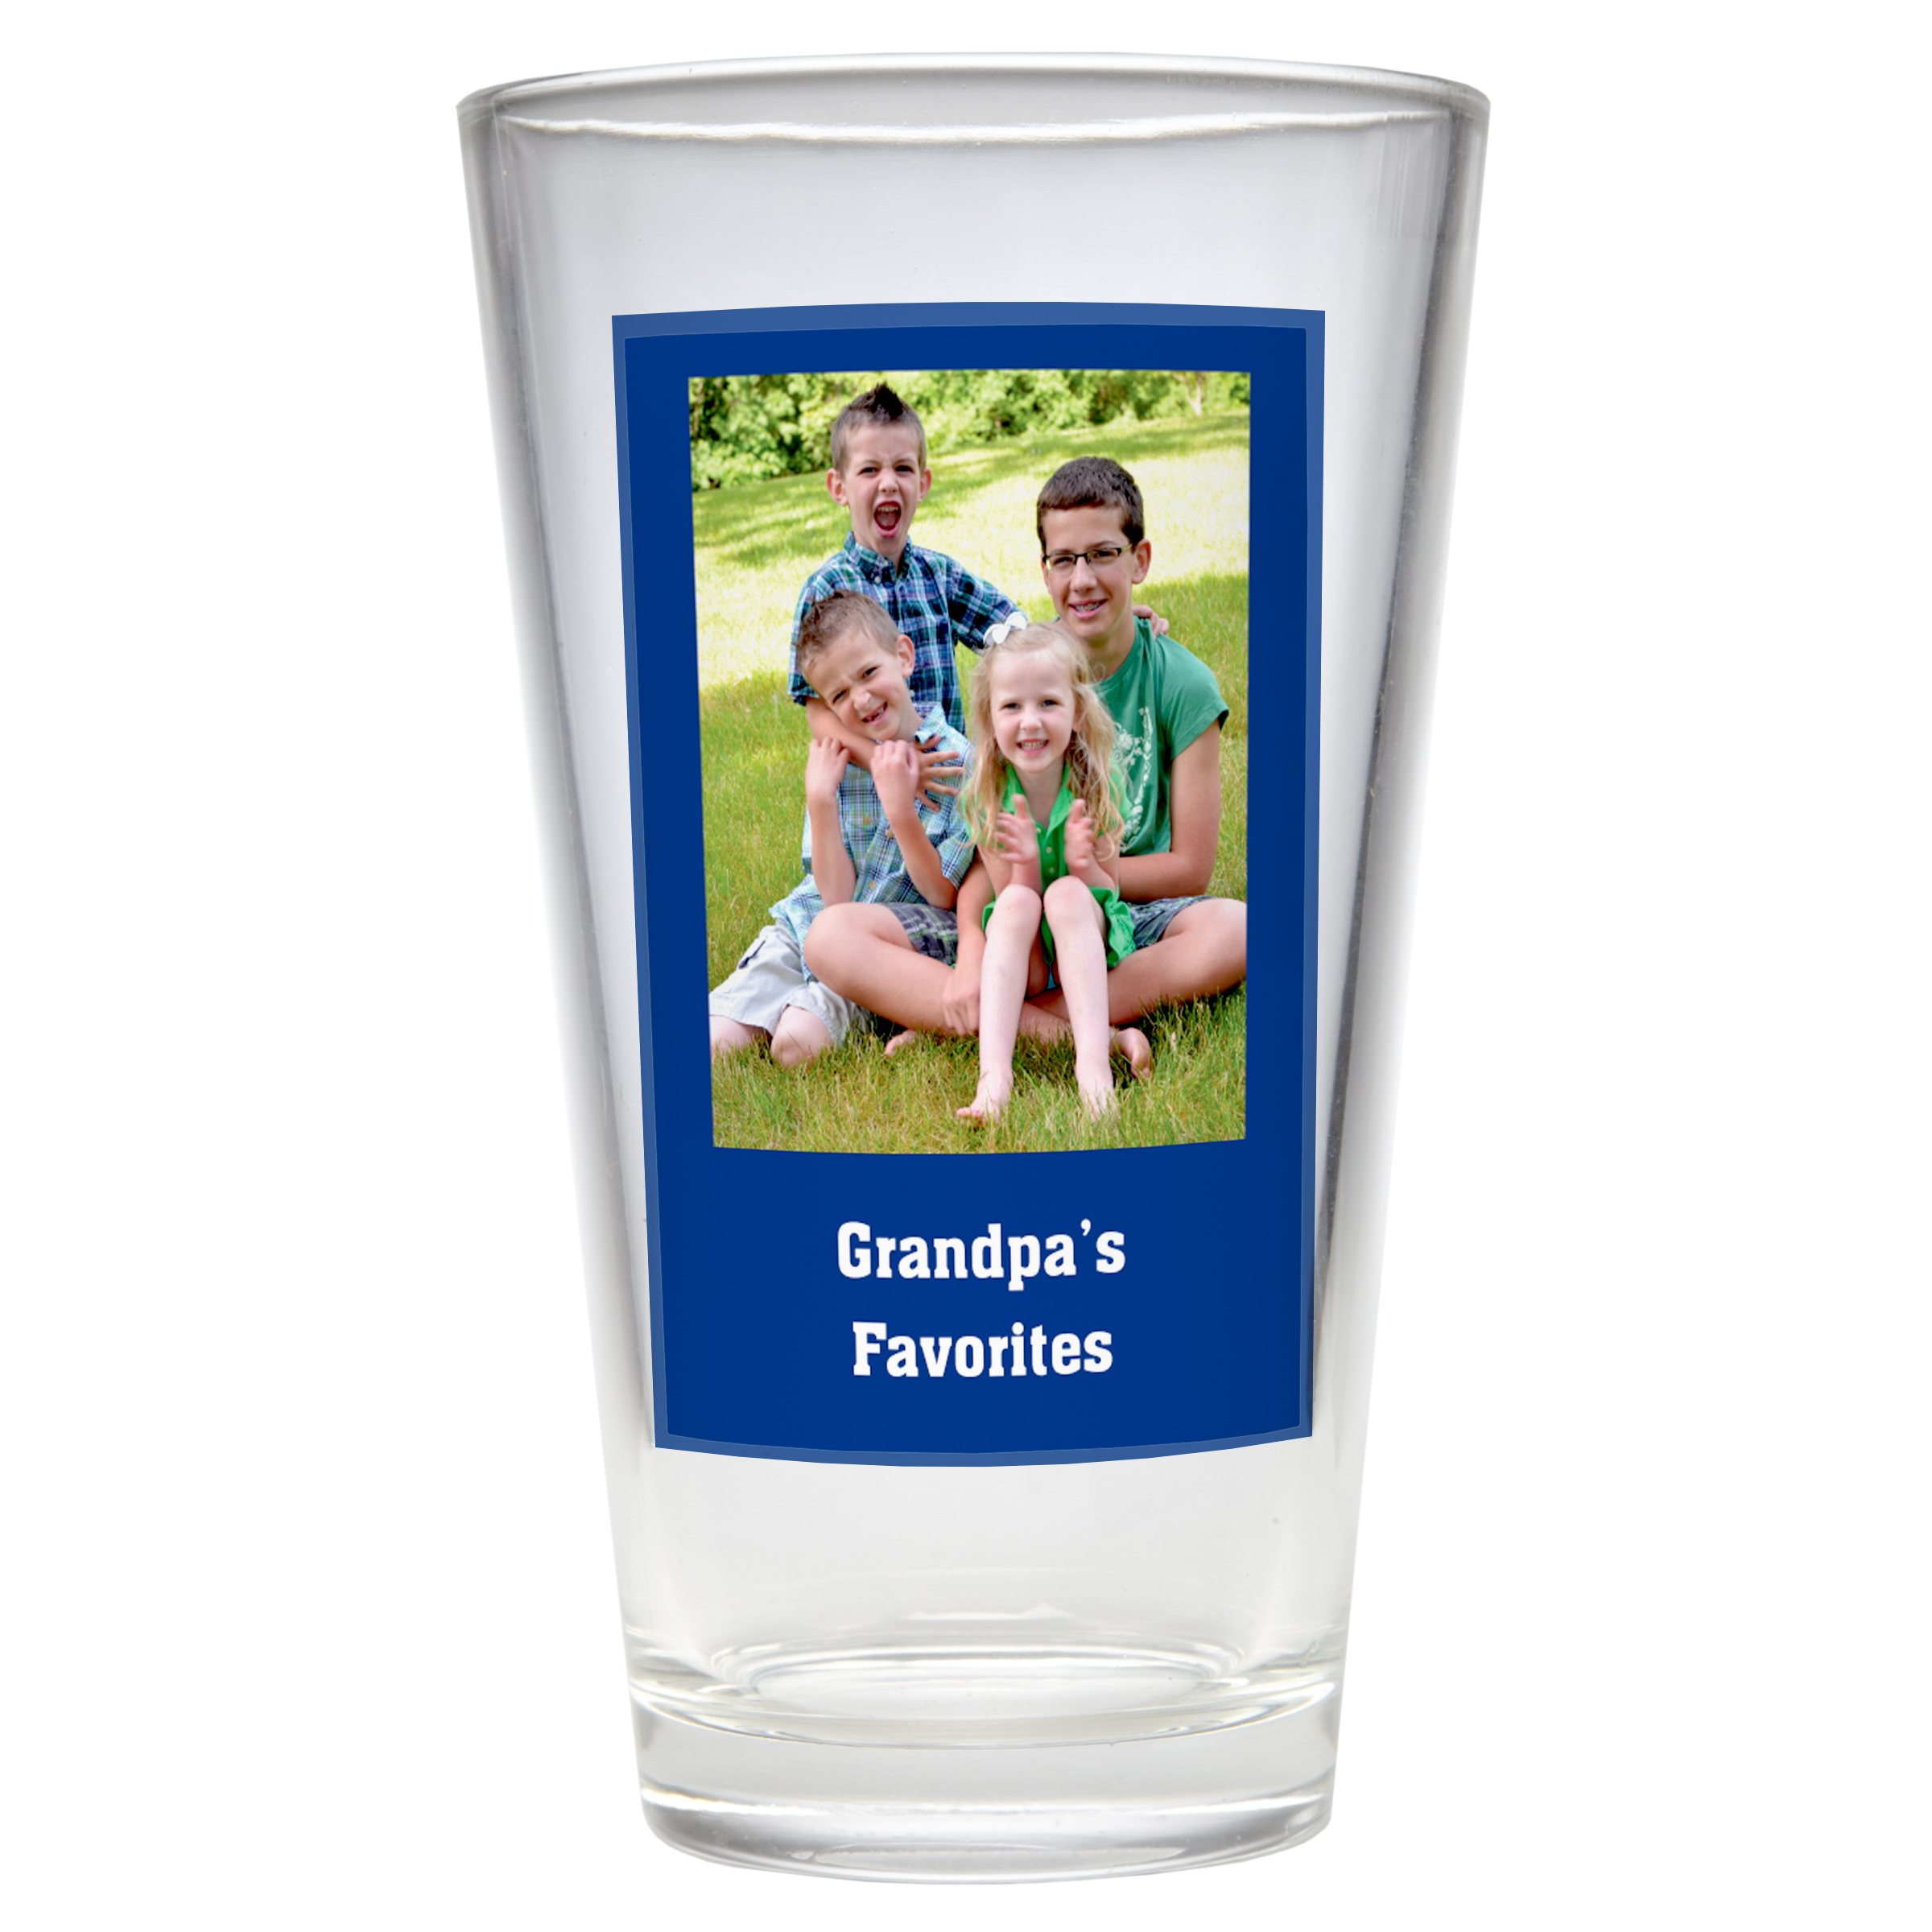 Personalized Photo Message Pub Glass - Single Glass - Available in 4 Colors